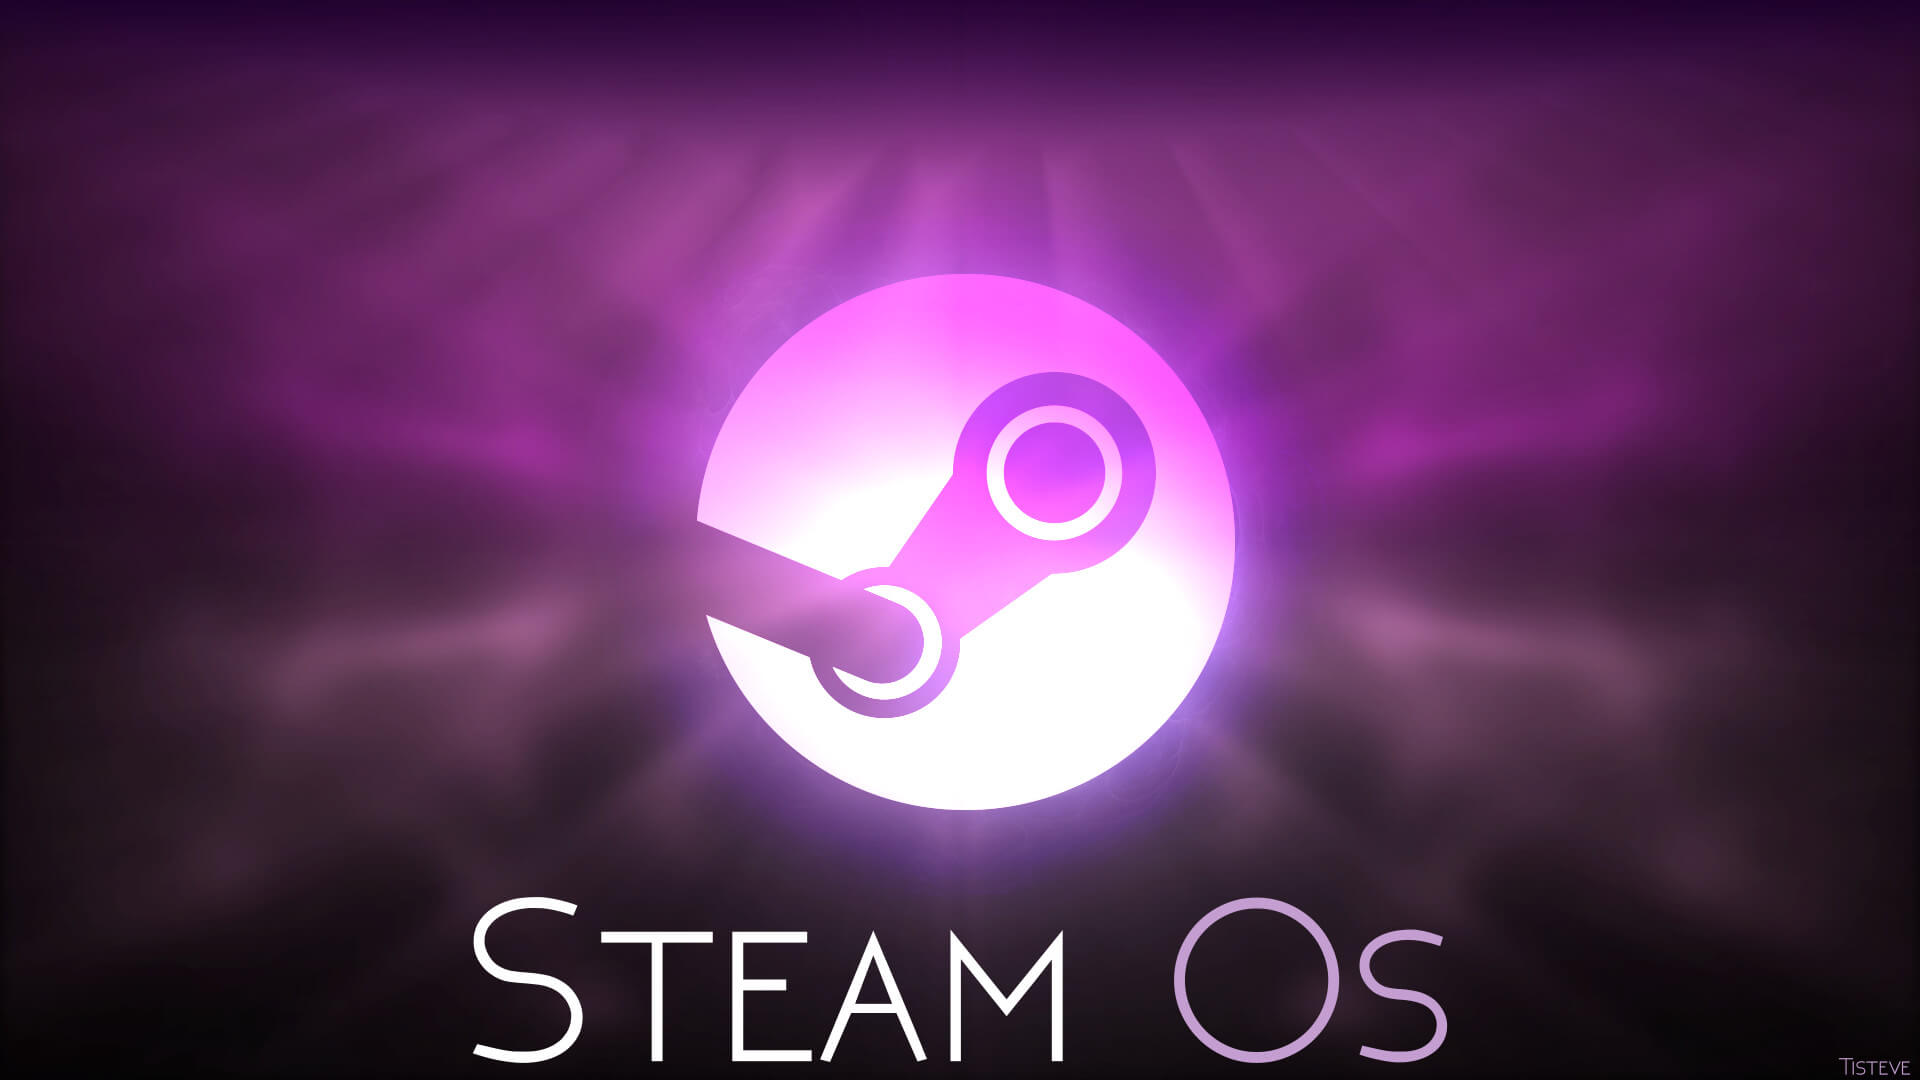 Steam OS for gaming